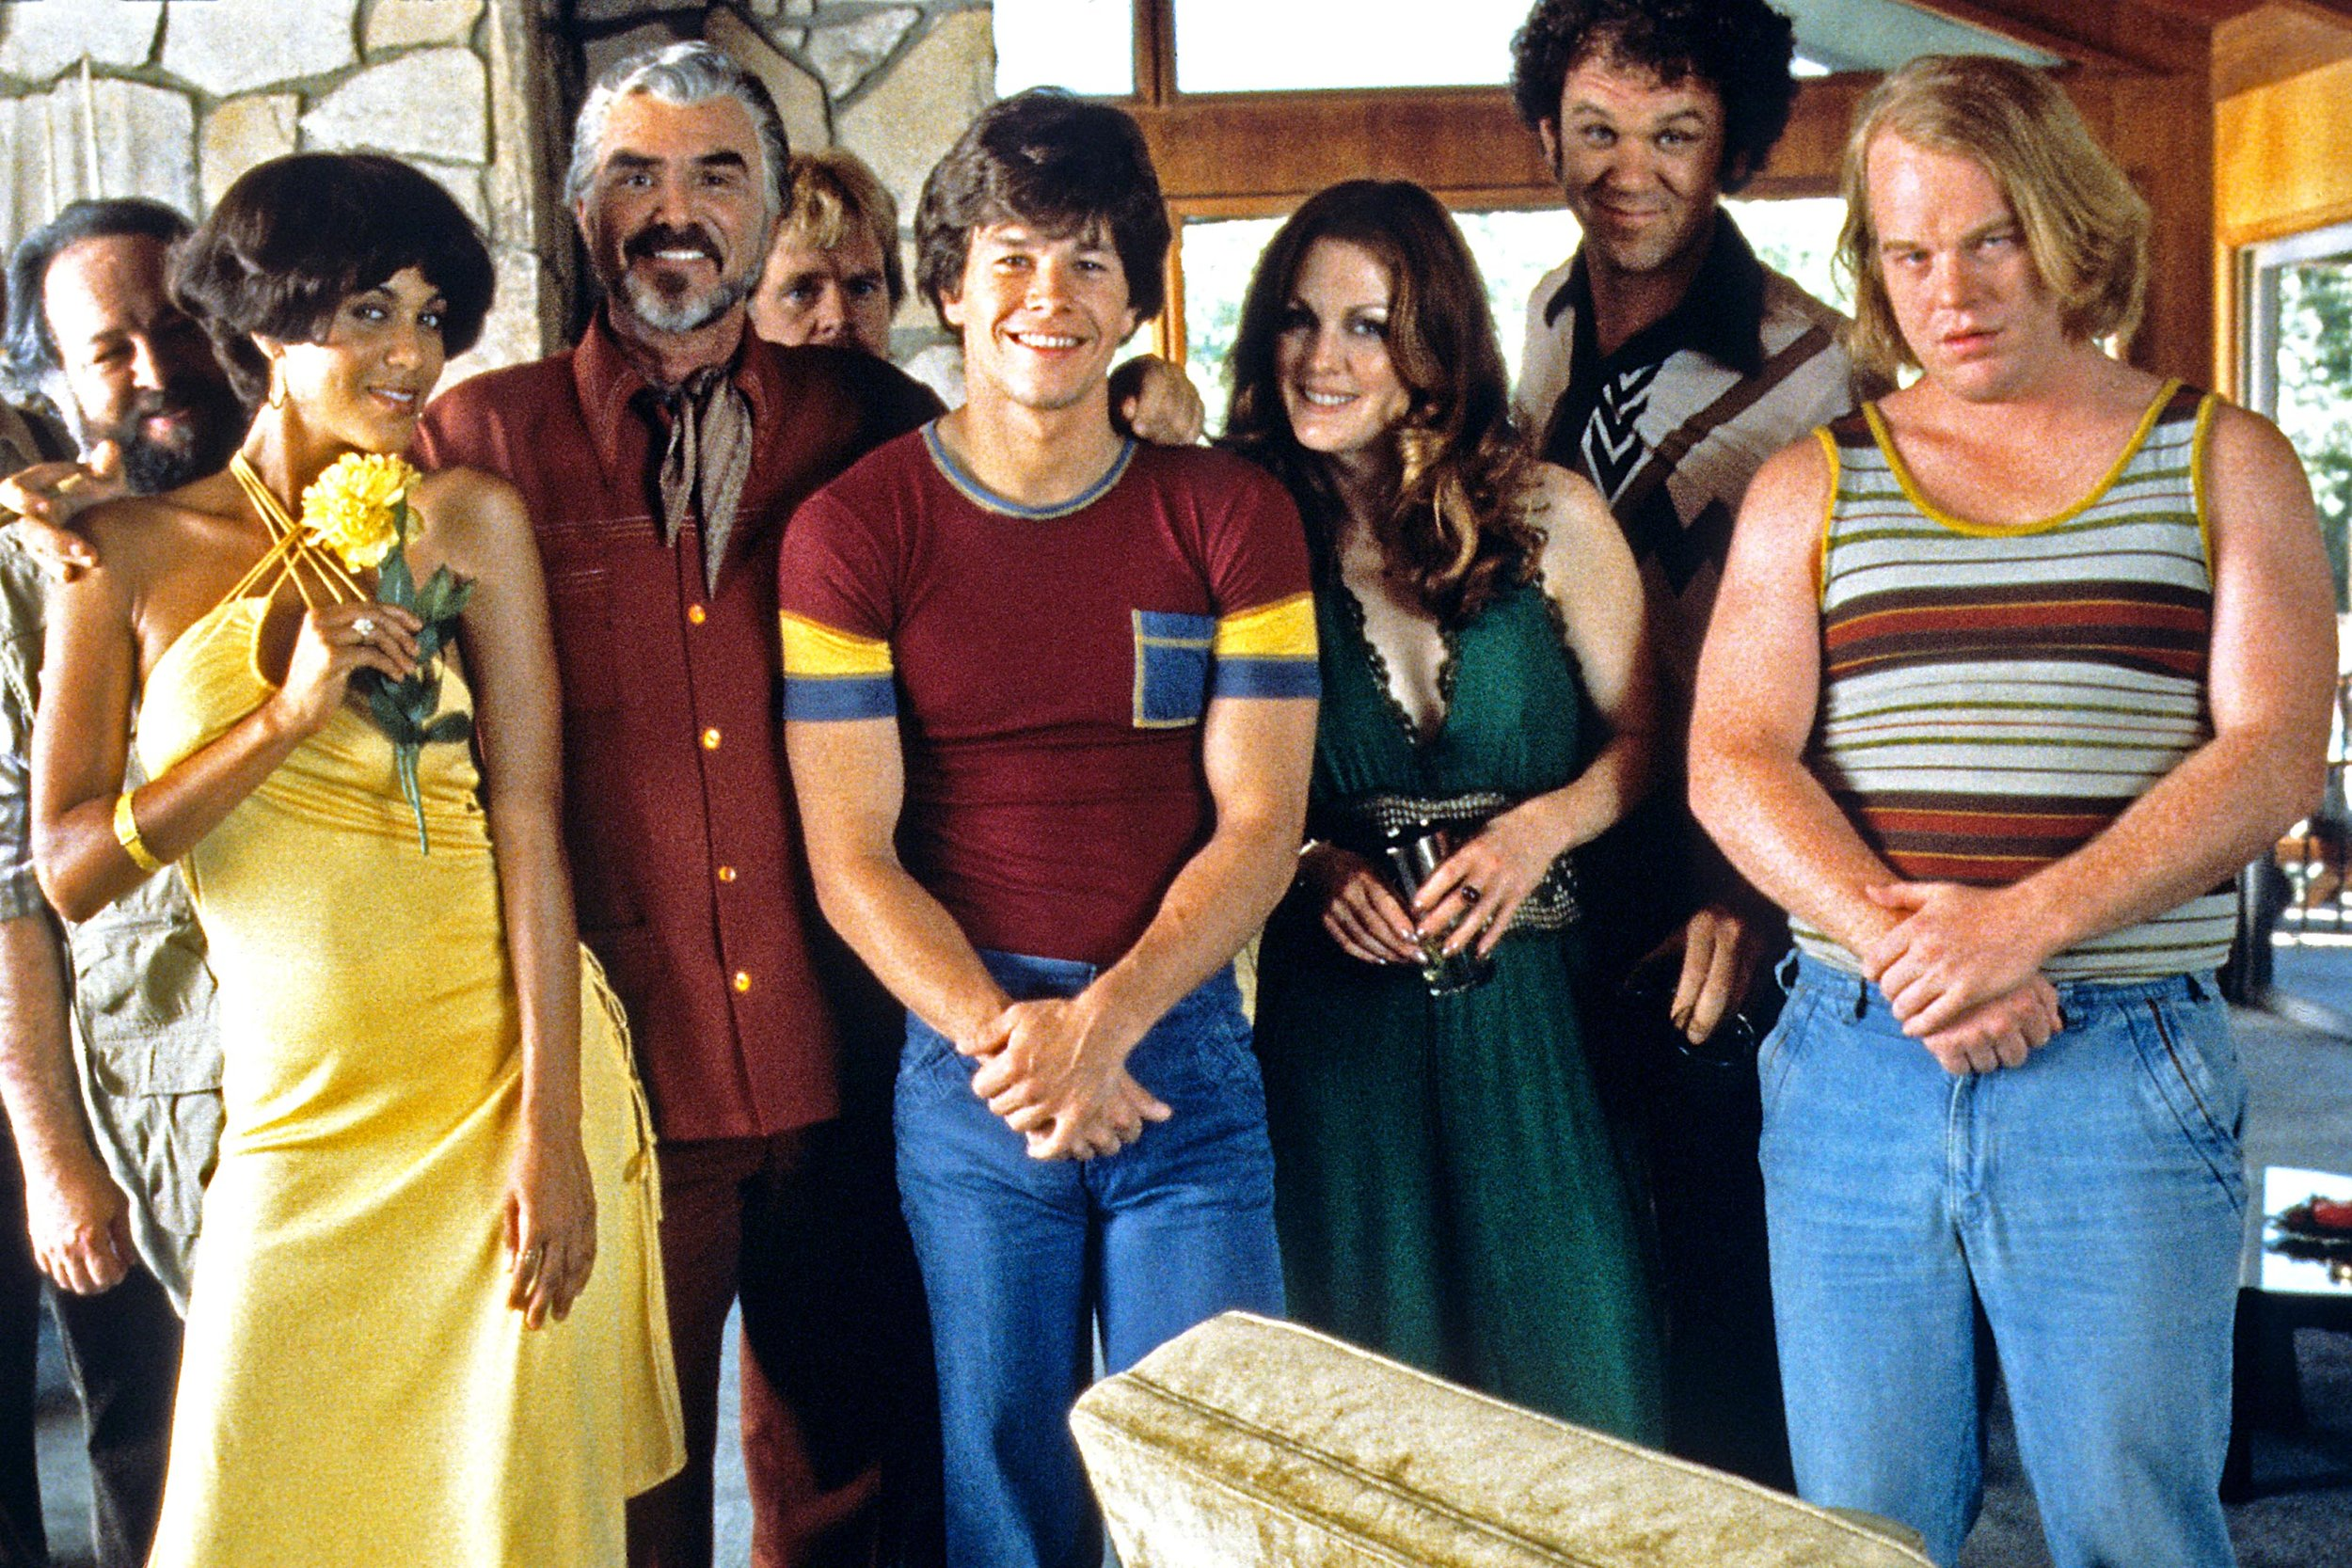 Lauren:Boogie Nights,dir. by Paul Thomas Anderson - Boogie Nightsis set in LA's San Fernando Valley and focuses on a young nightclub dishwasher who becomes a popular porn star,chronicling his rise in the Golden Age of Porn of the 1970s through to his fall during the excesses of the 1980s. It's a classic. See Mark Wahlberg actually express emotion!